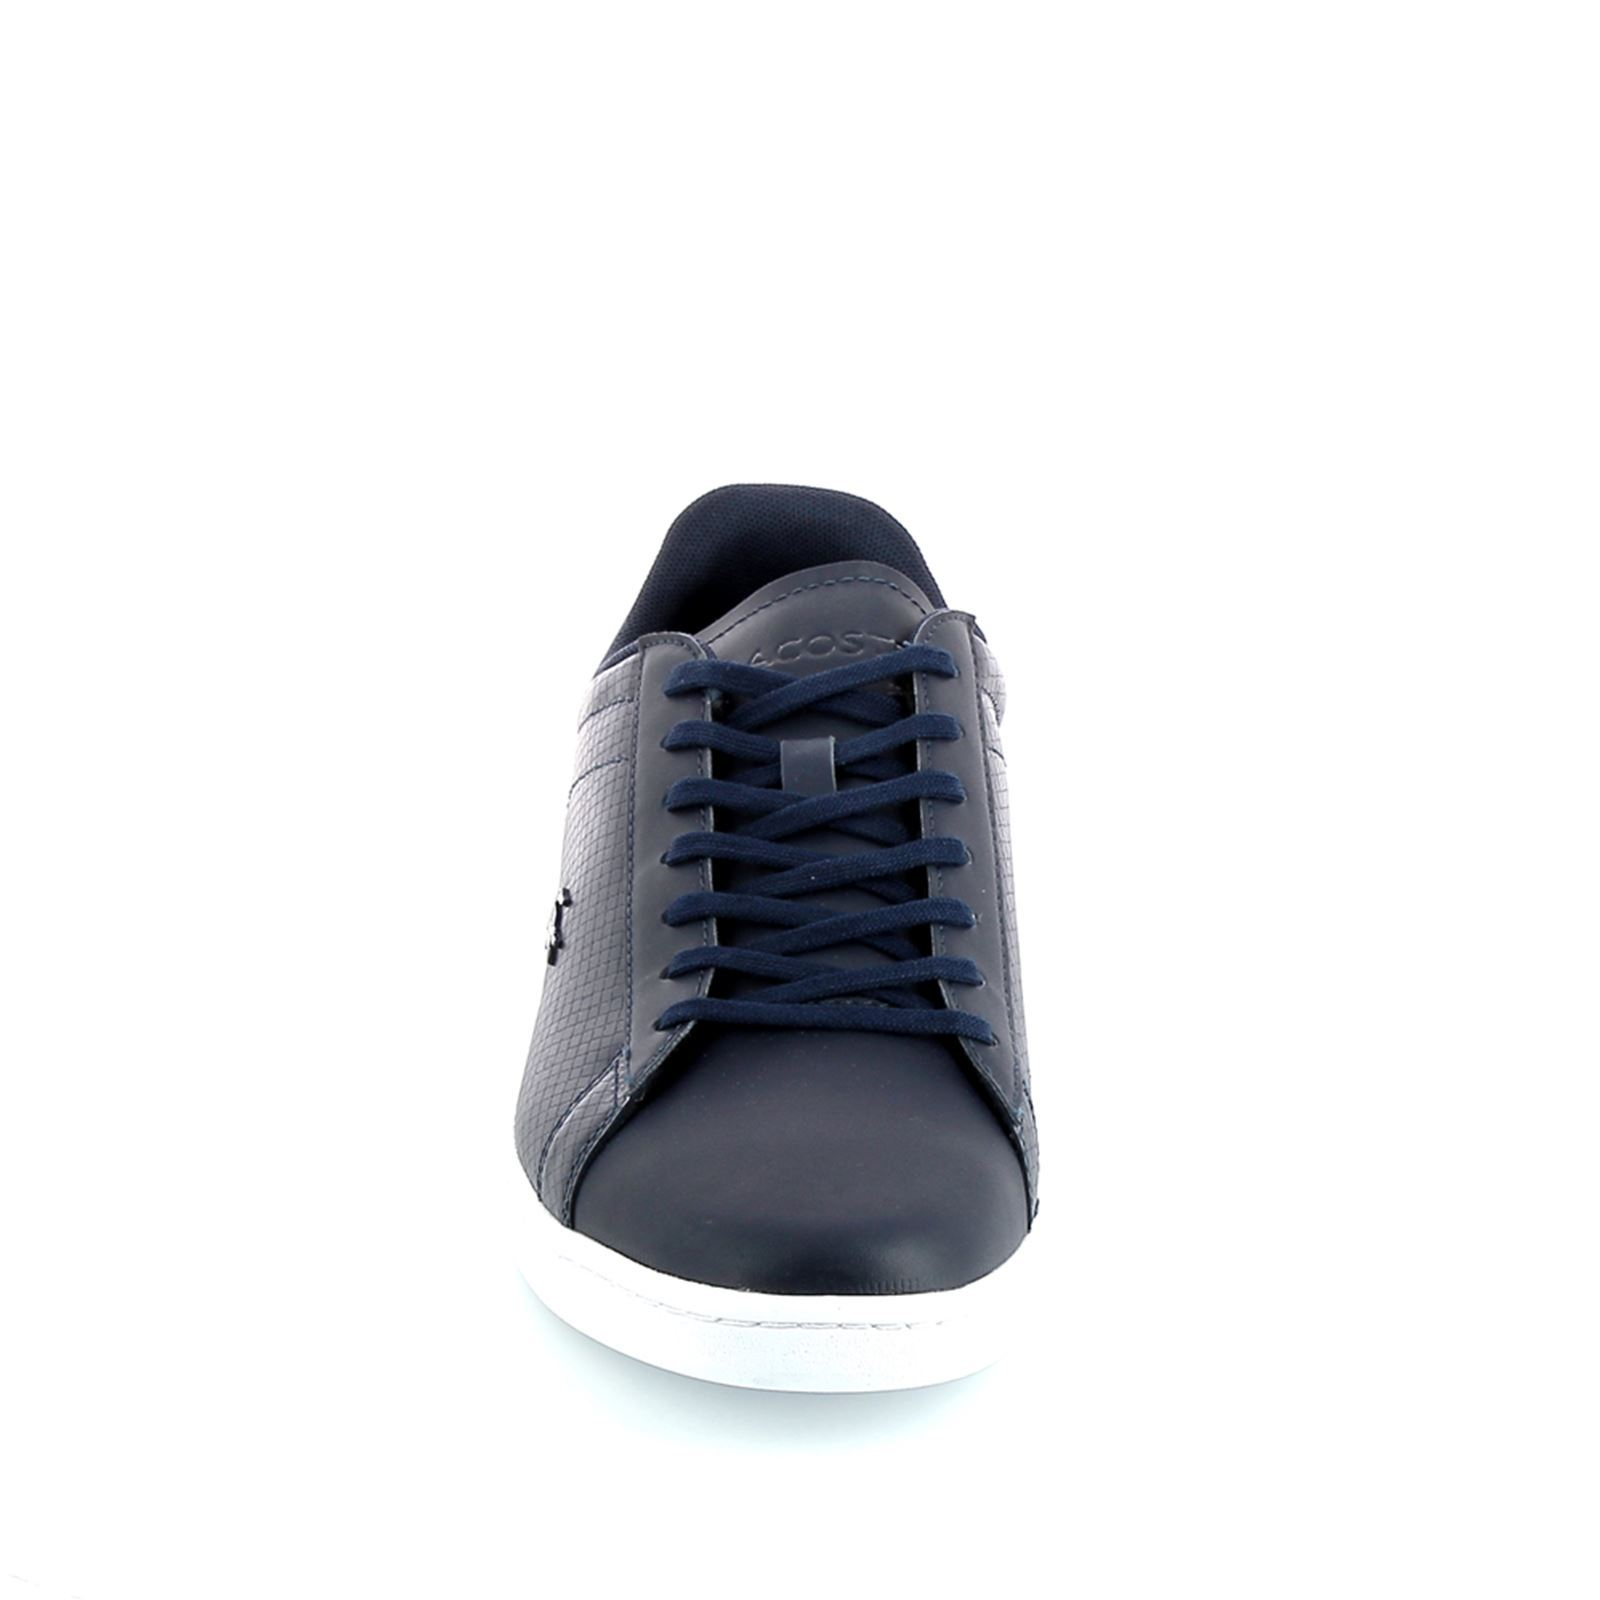 aabef870550 Lacoste Carnaby Evo - Baskets basses - bleu marine